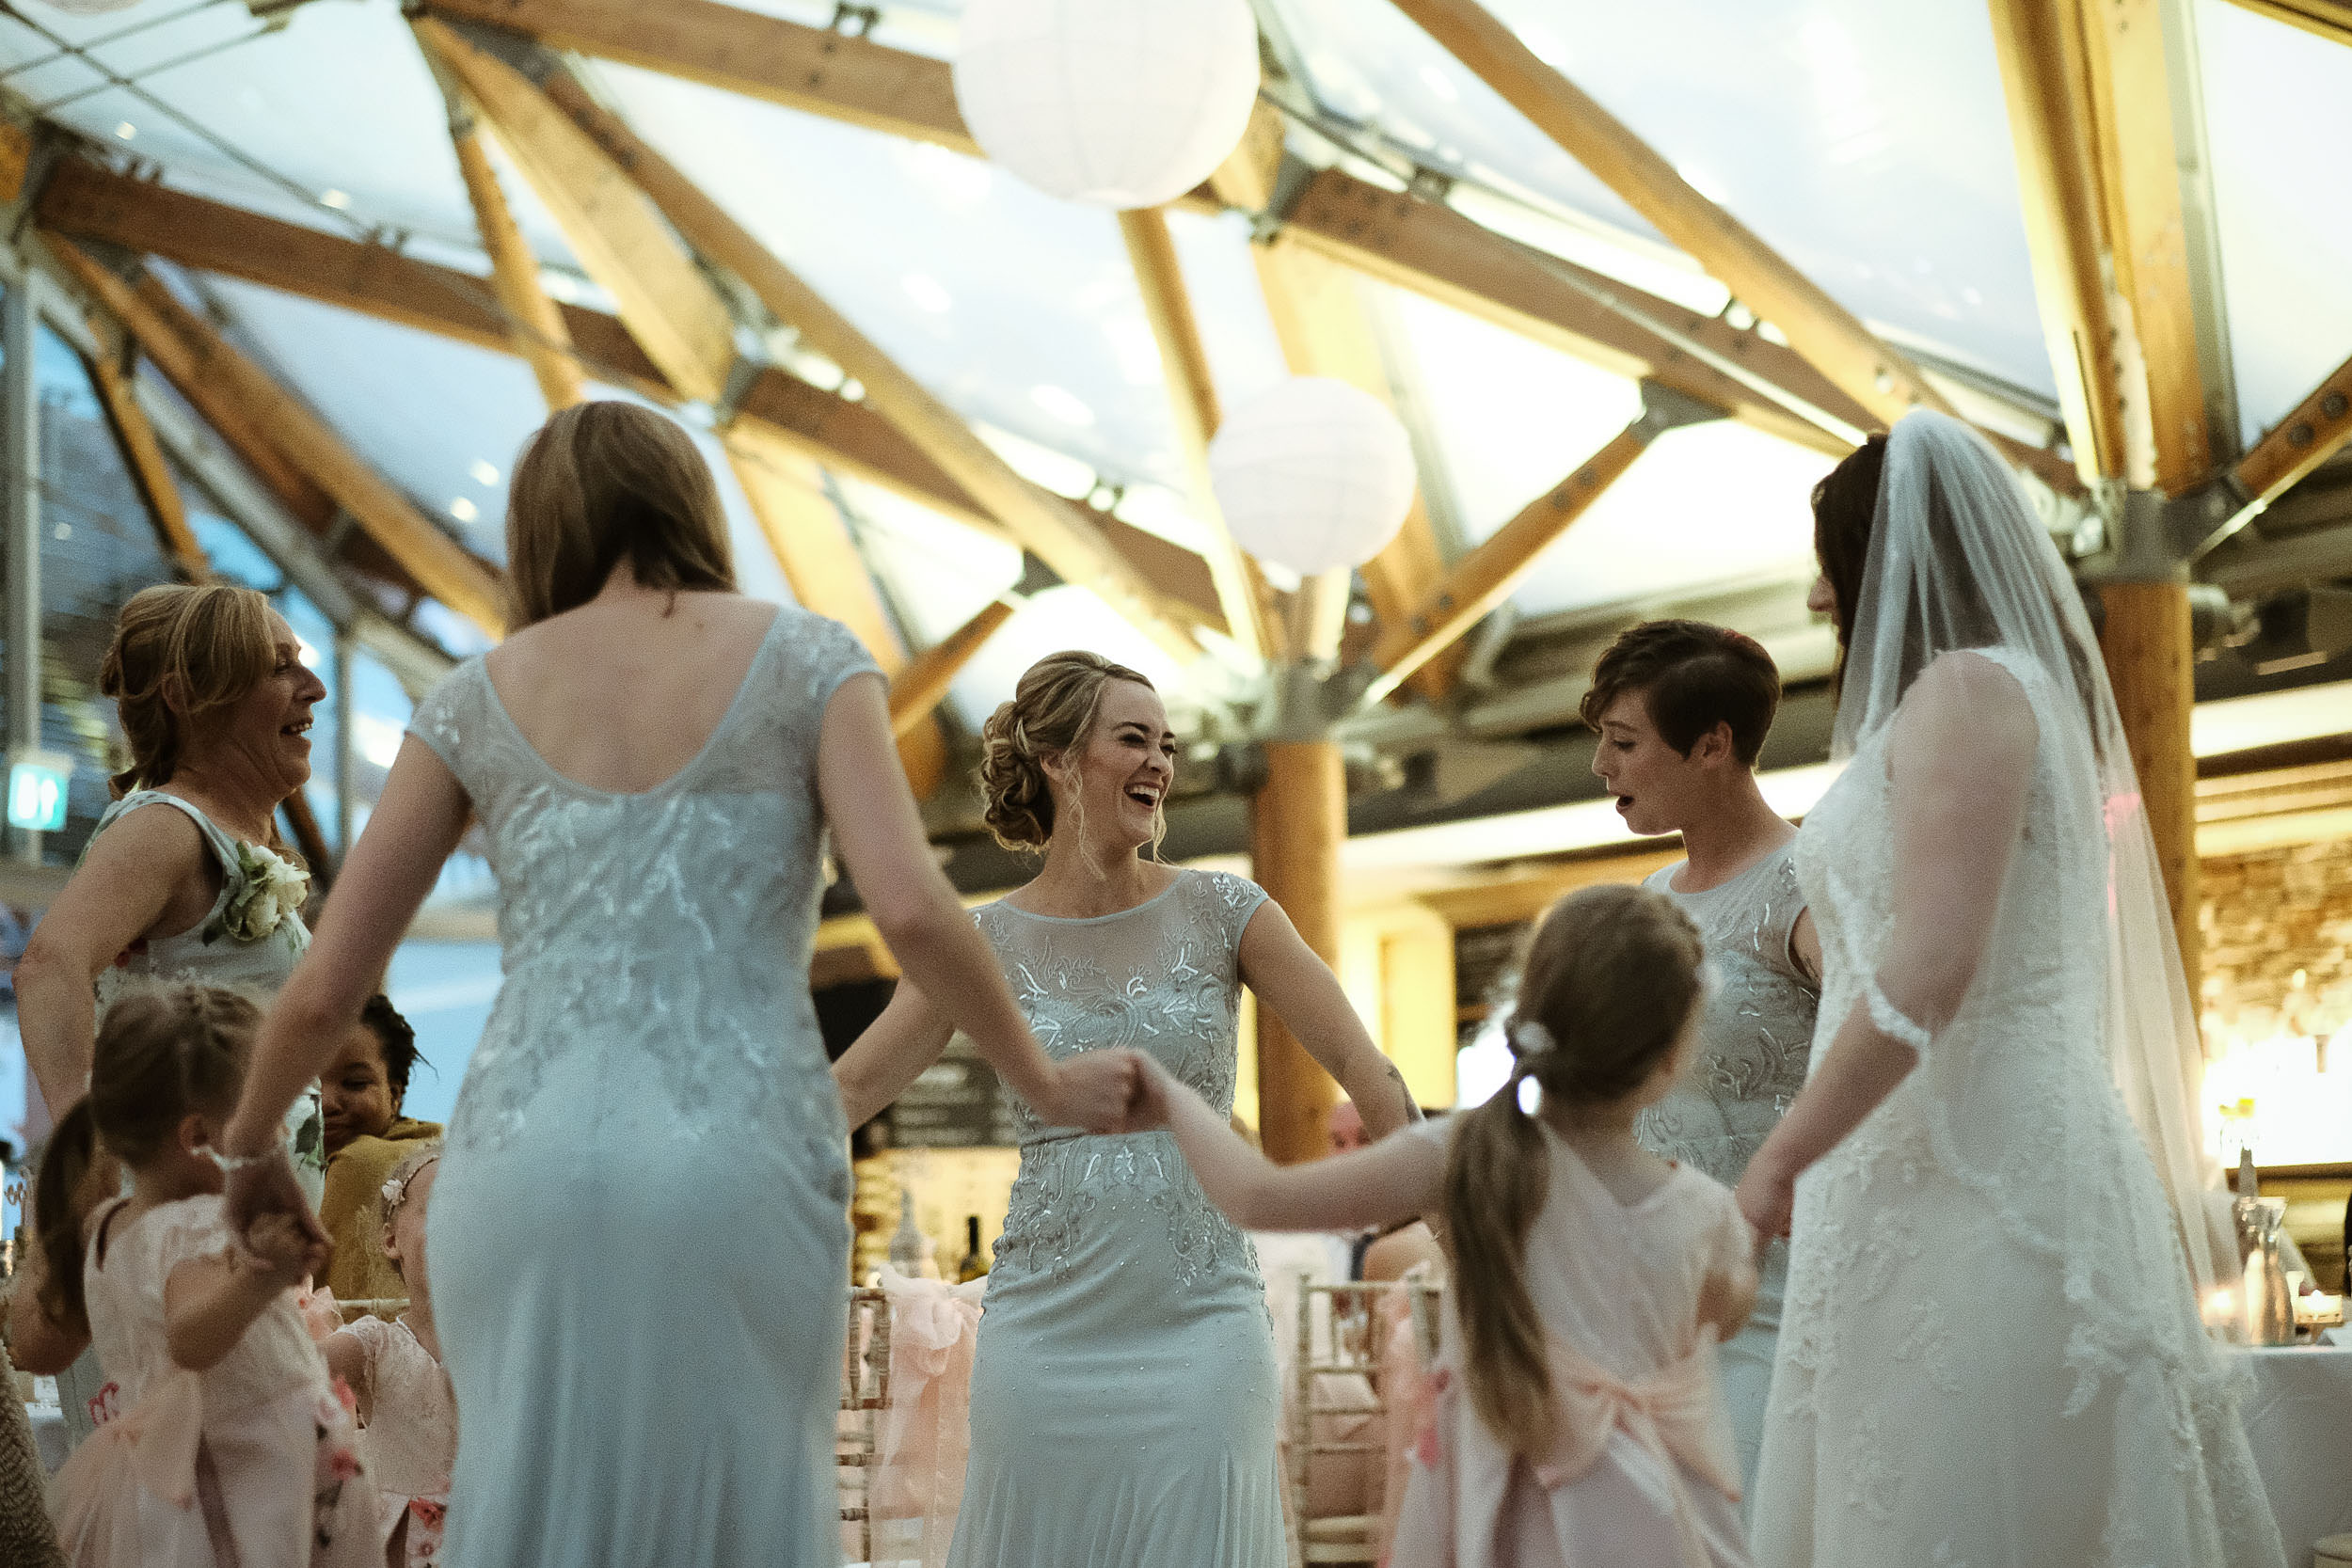 Bride and bridesmaids dancing at Alnwick Garden wedding